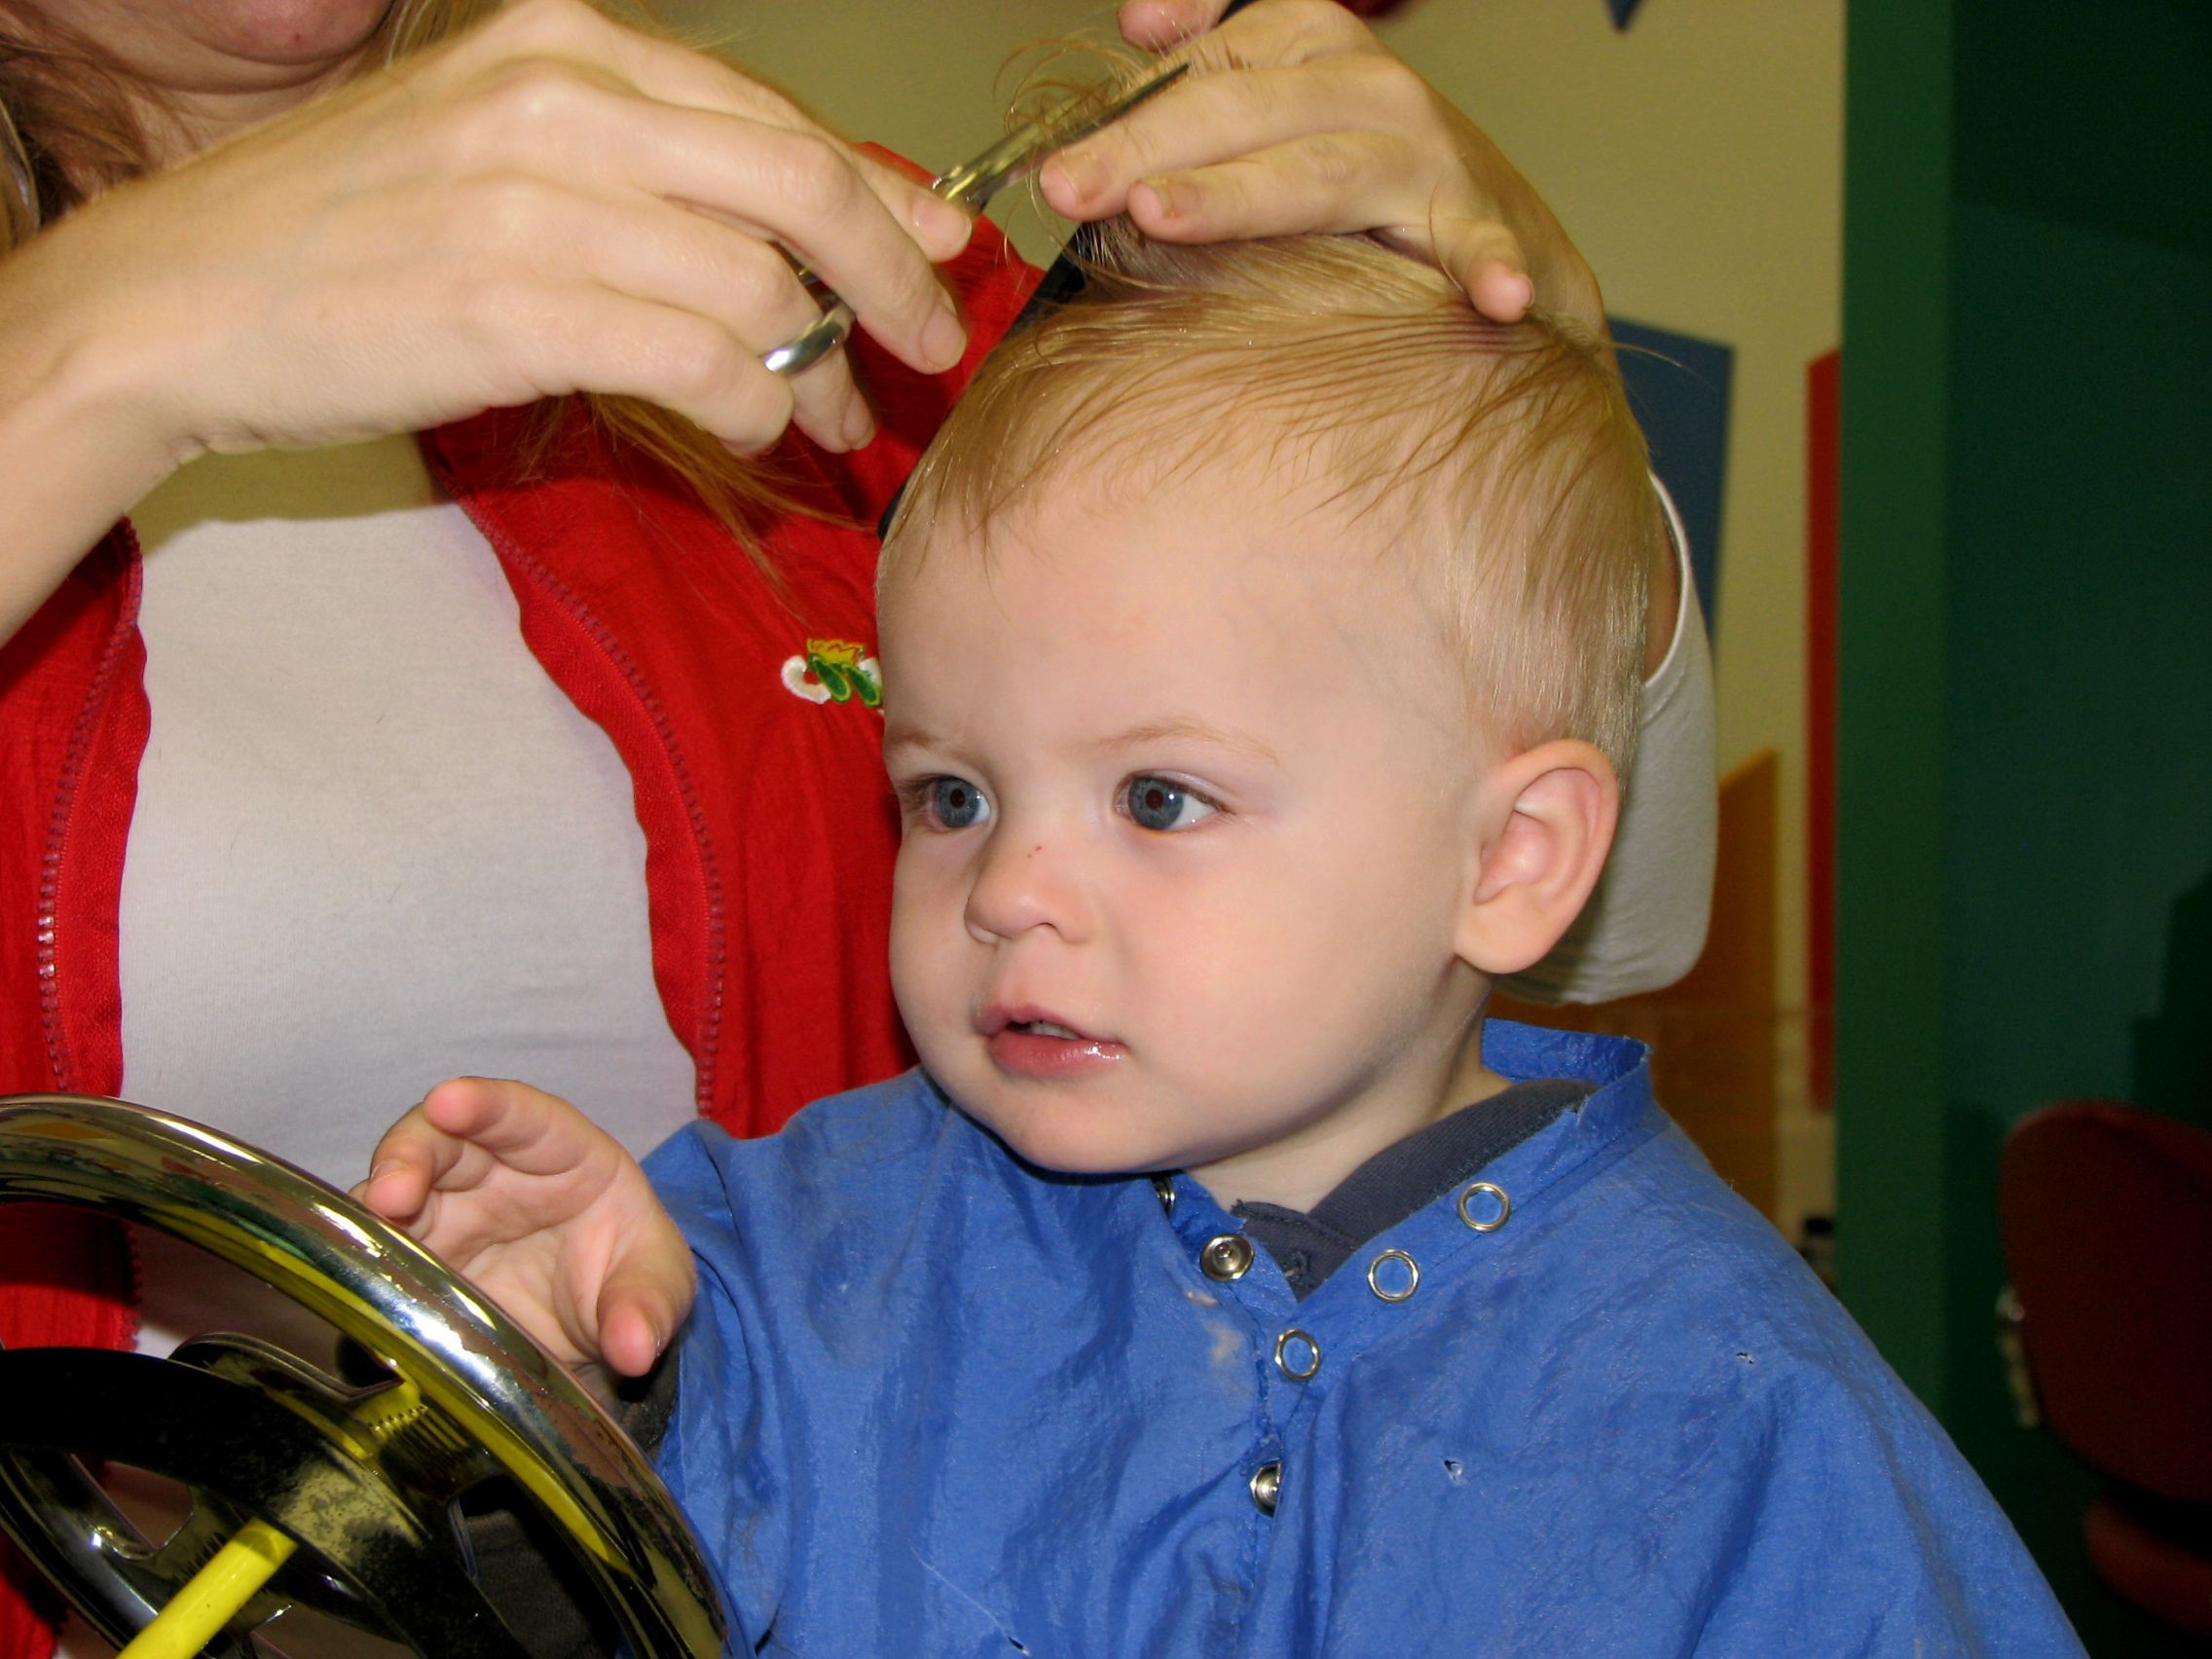 pin on little boy hair cuts & styles